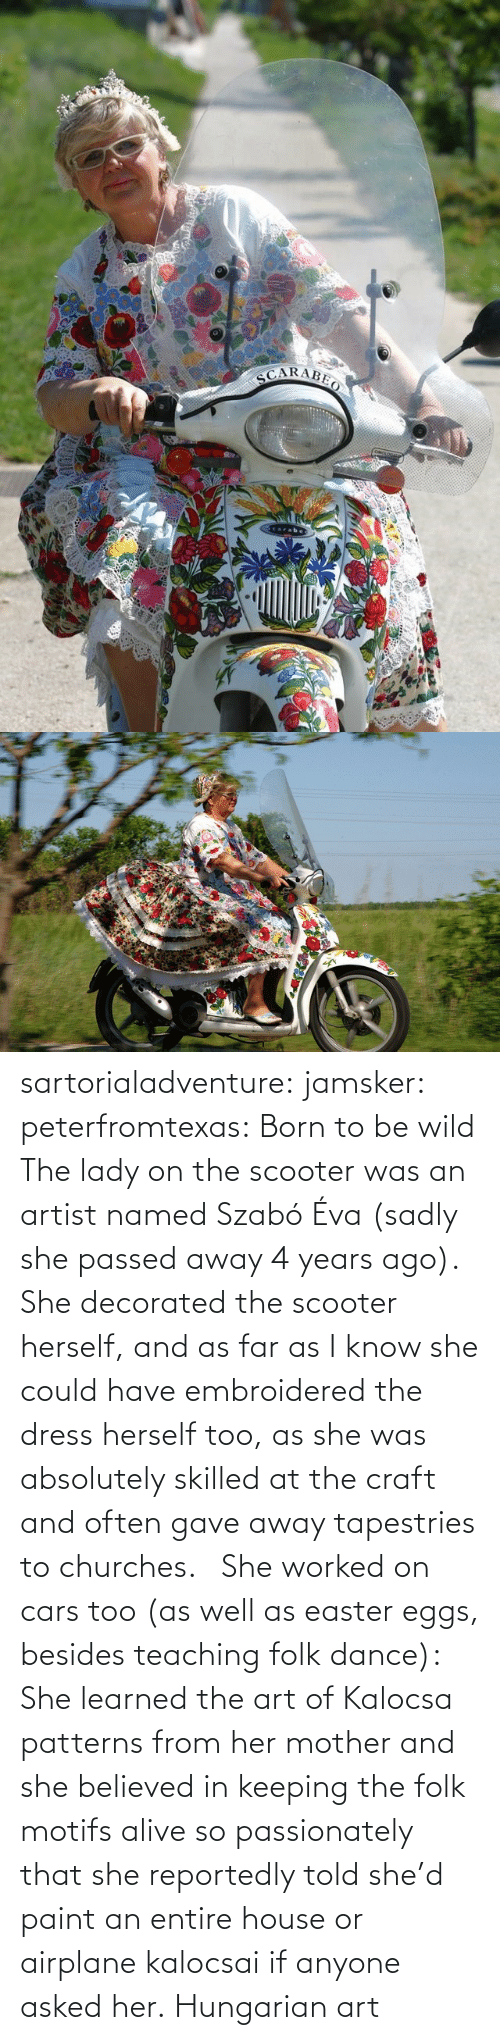 too: sartorialadventure: jamsker:  peterfromtexas: Born to be wild The lady on the scooter was an artist named Szabó Éva (sadly she passed away 4 years ago). She decorated the scooter herself, and as far as I know she could have embroidered the dress herself too, as she was absolutely skilled at the craft and often gave away tapestries to churches.   She worked on cars too (as well as easter eggs, besides teaching folk dance): She learned the art of Kalocsa patterns from her mother and she believed in keeping the folk motifs alive so passionately that she reportedly told she'd paint an entire house or airplane kalocsai if anyone asked her.  Hungarian art